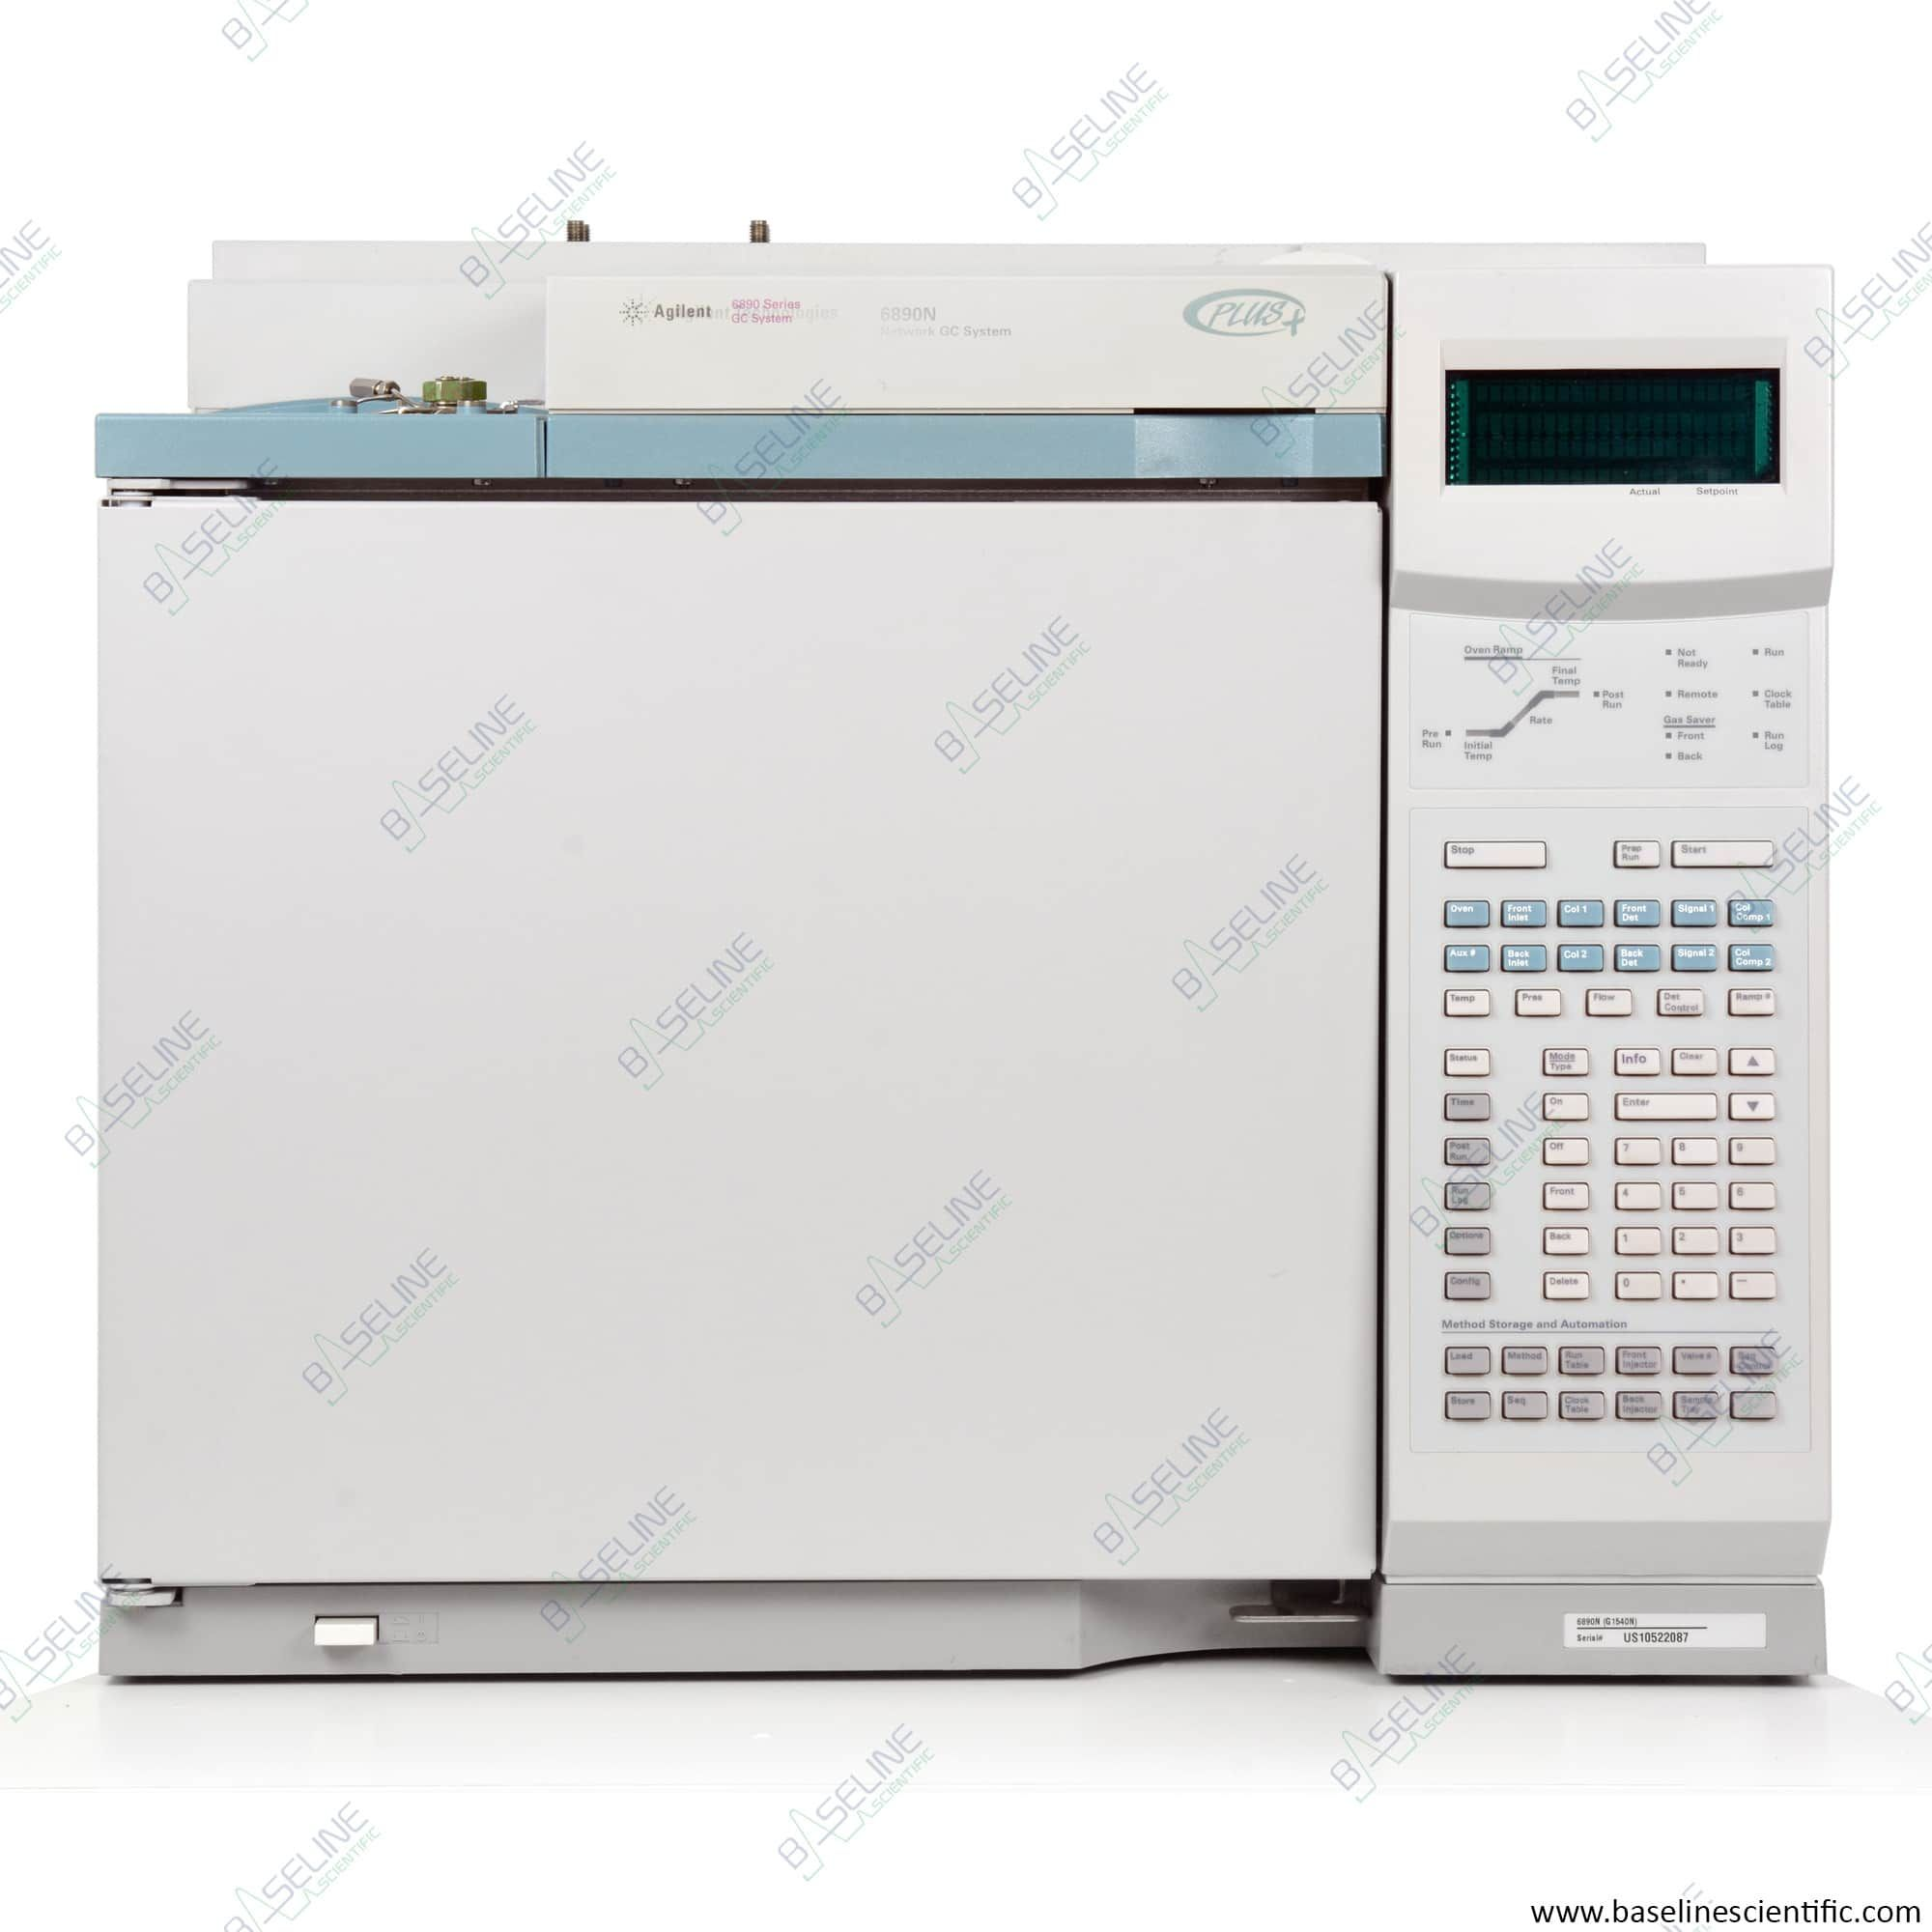 Refurbished Agilent 6890 GC with Single SSL inlet and Single TCD with ONE YEAR WARRANTY